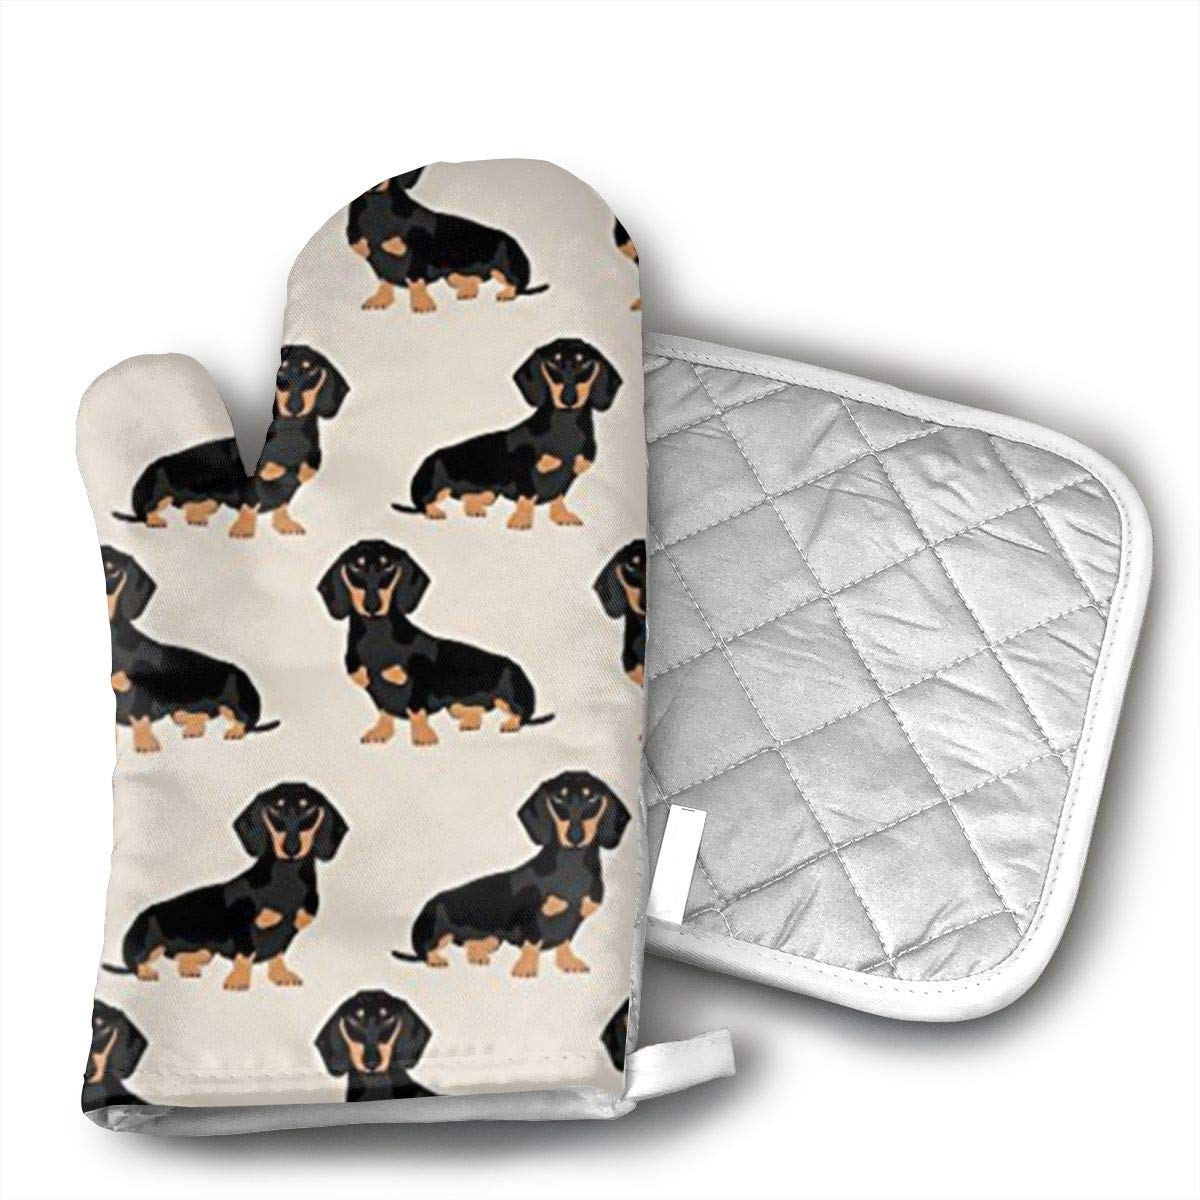 Wiener Dog Fabric Doxie Dachshund Weiner Dog Pet Dogs Oven Mitts and Pot Holders Kitchen Mitten Cooking Gloves,Cooking, Baking, BBQ.